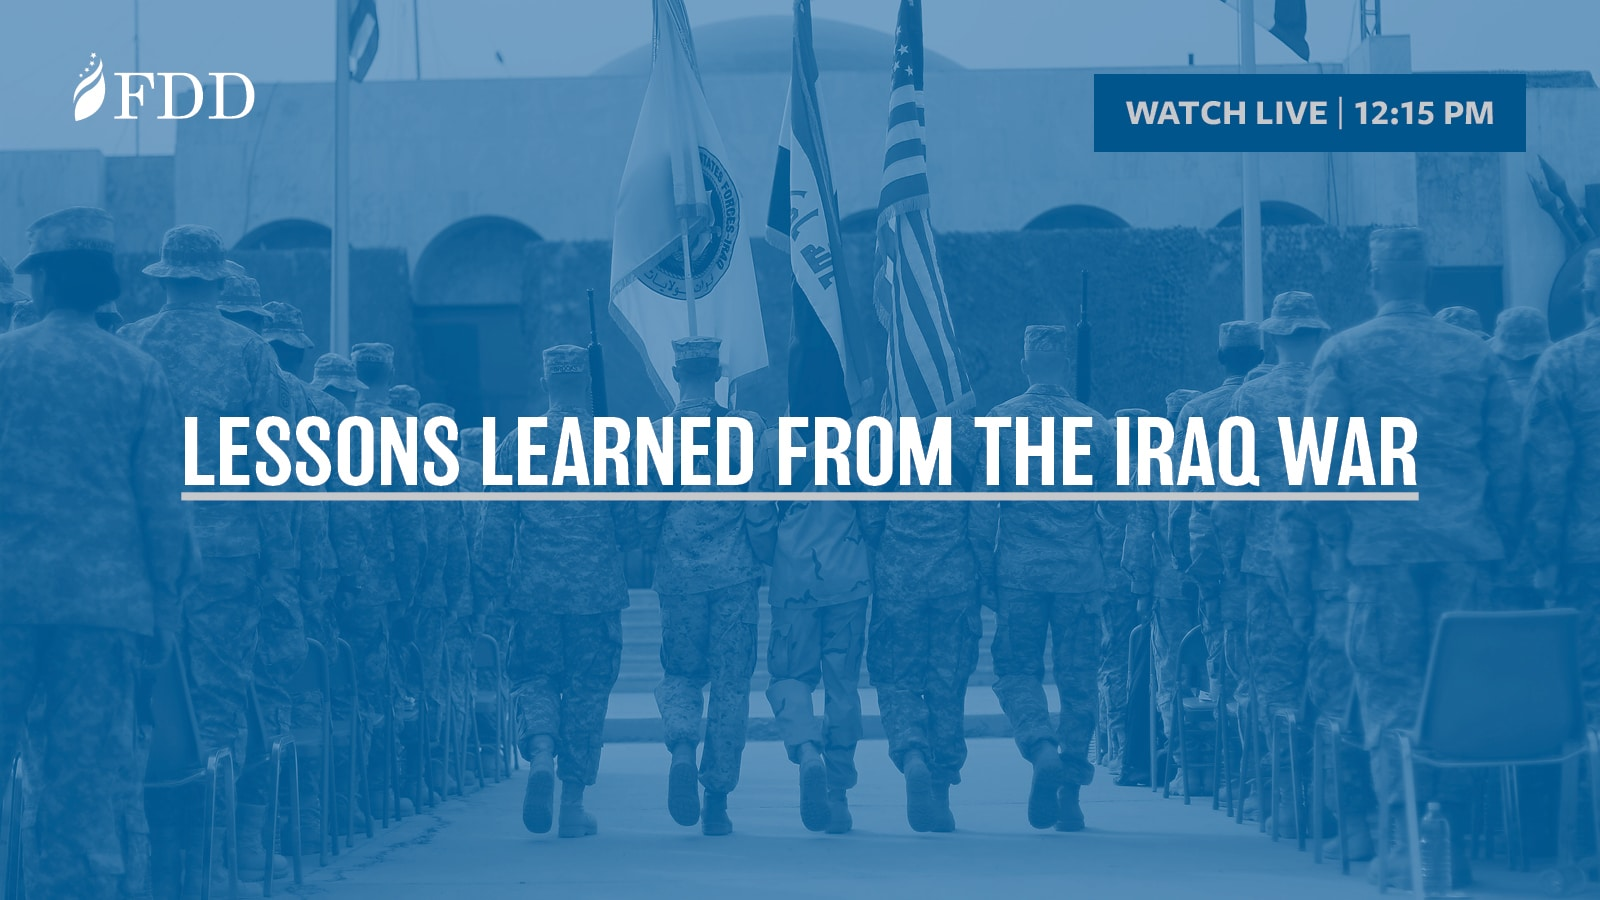 FDD | Lessons Learned from the Iraq War